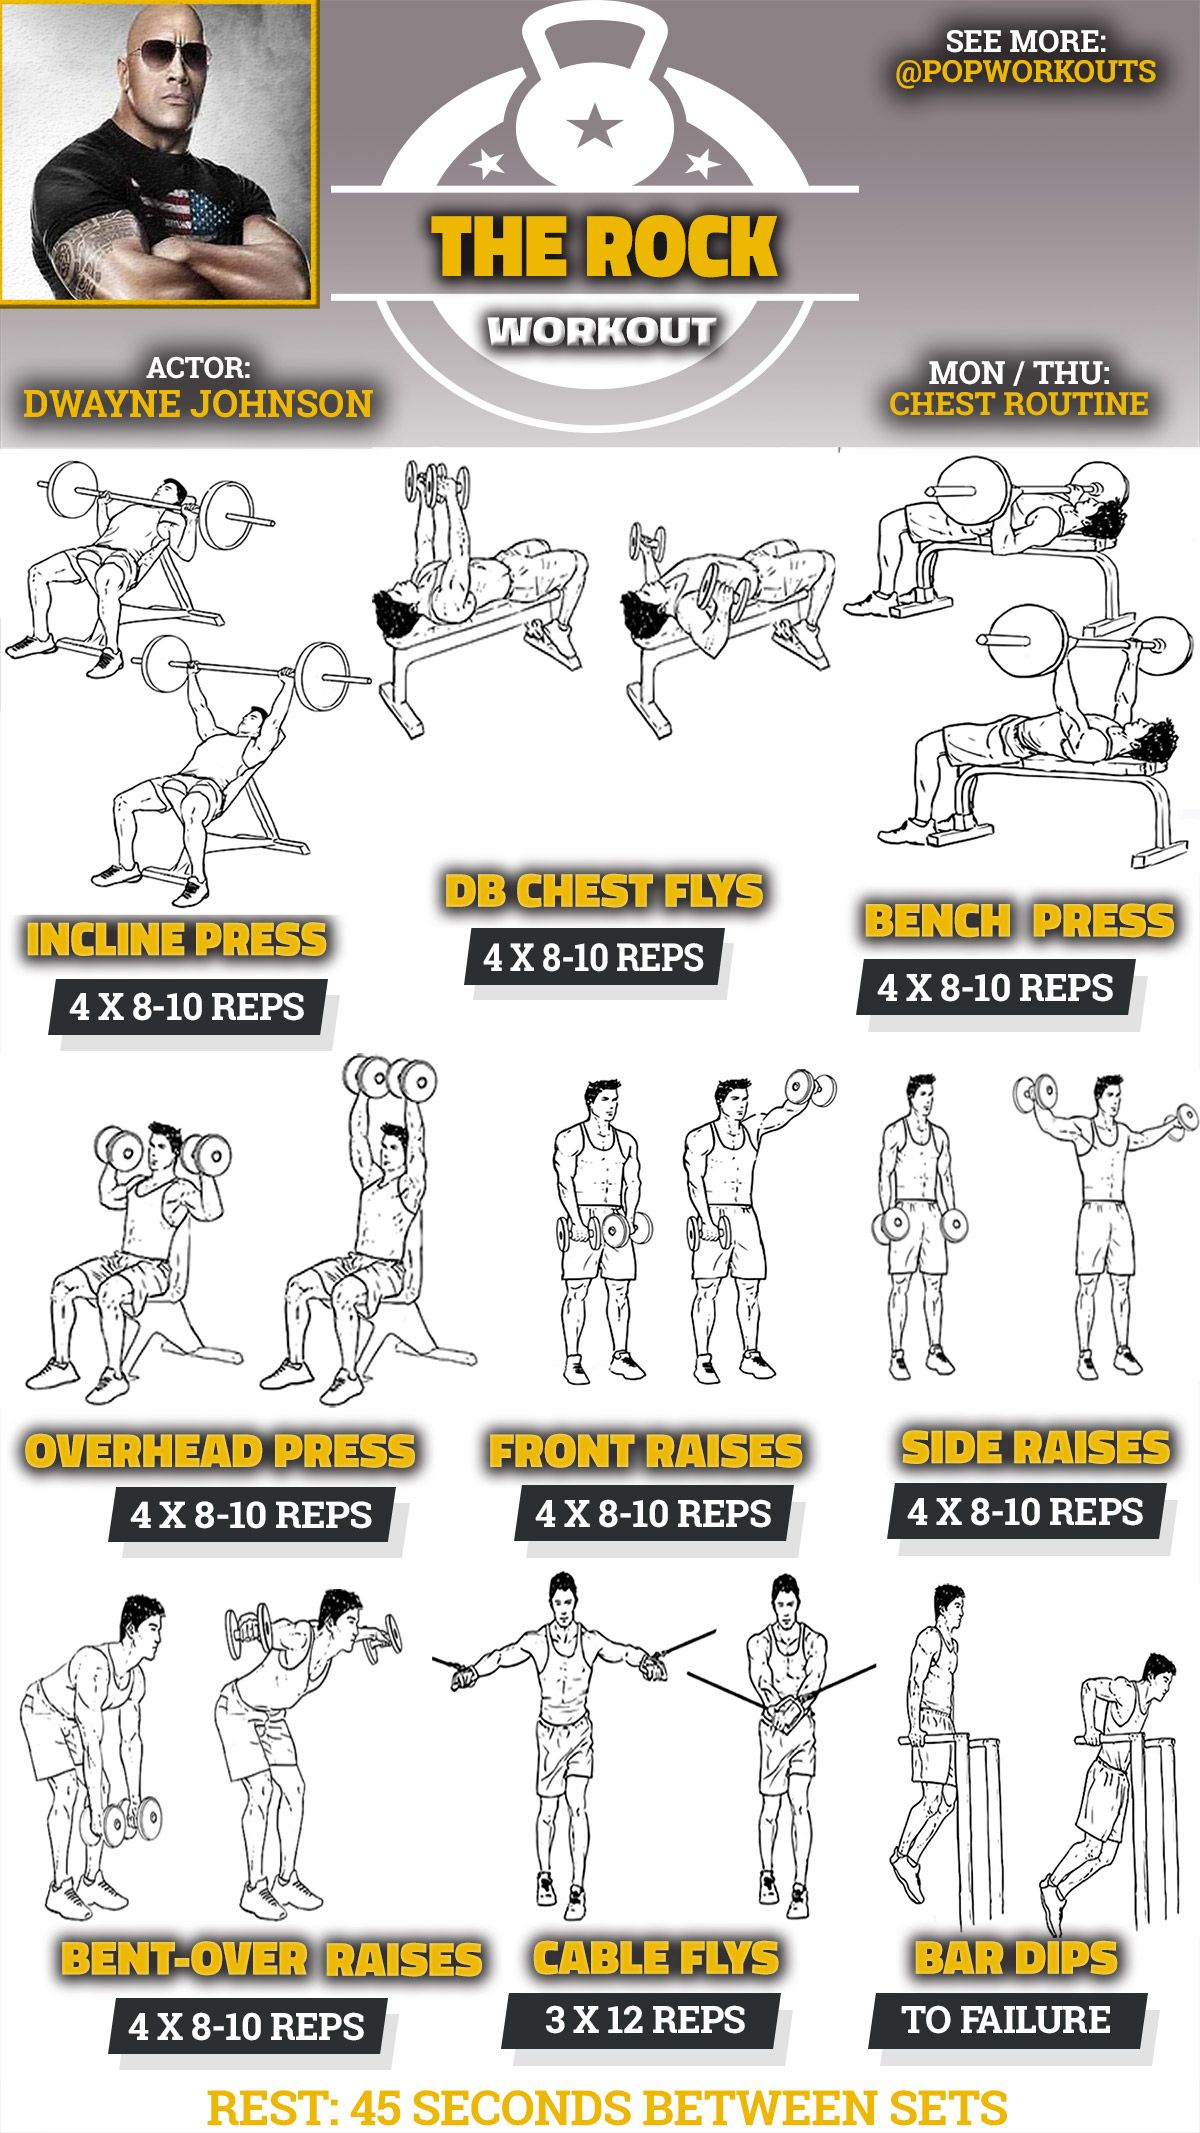 Gym Workout Chart For Chest For Men The Dwayne Johnson Chest Workout Builds The Rocks Massive